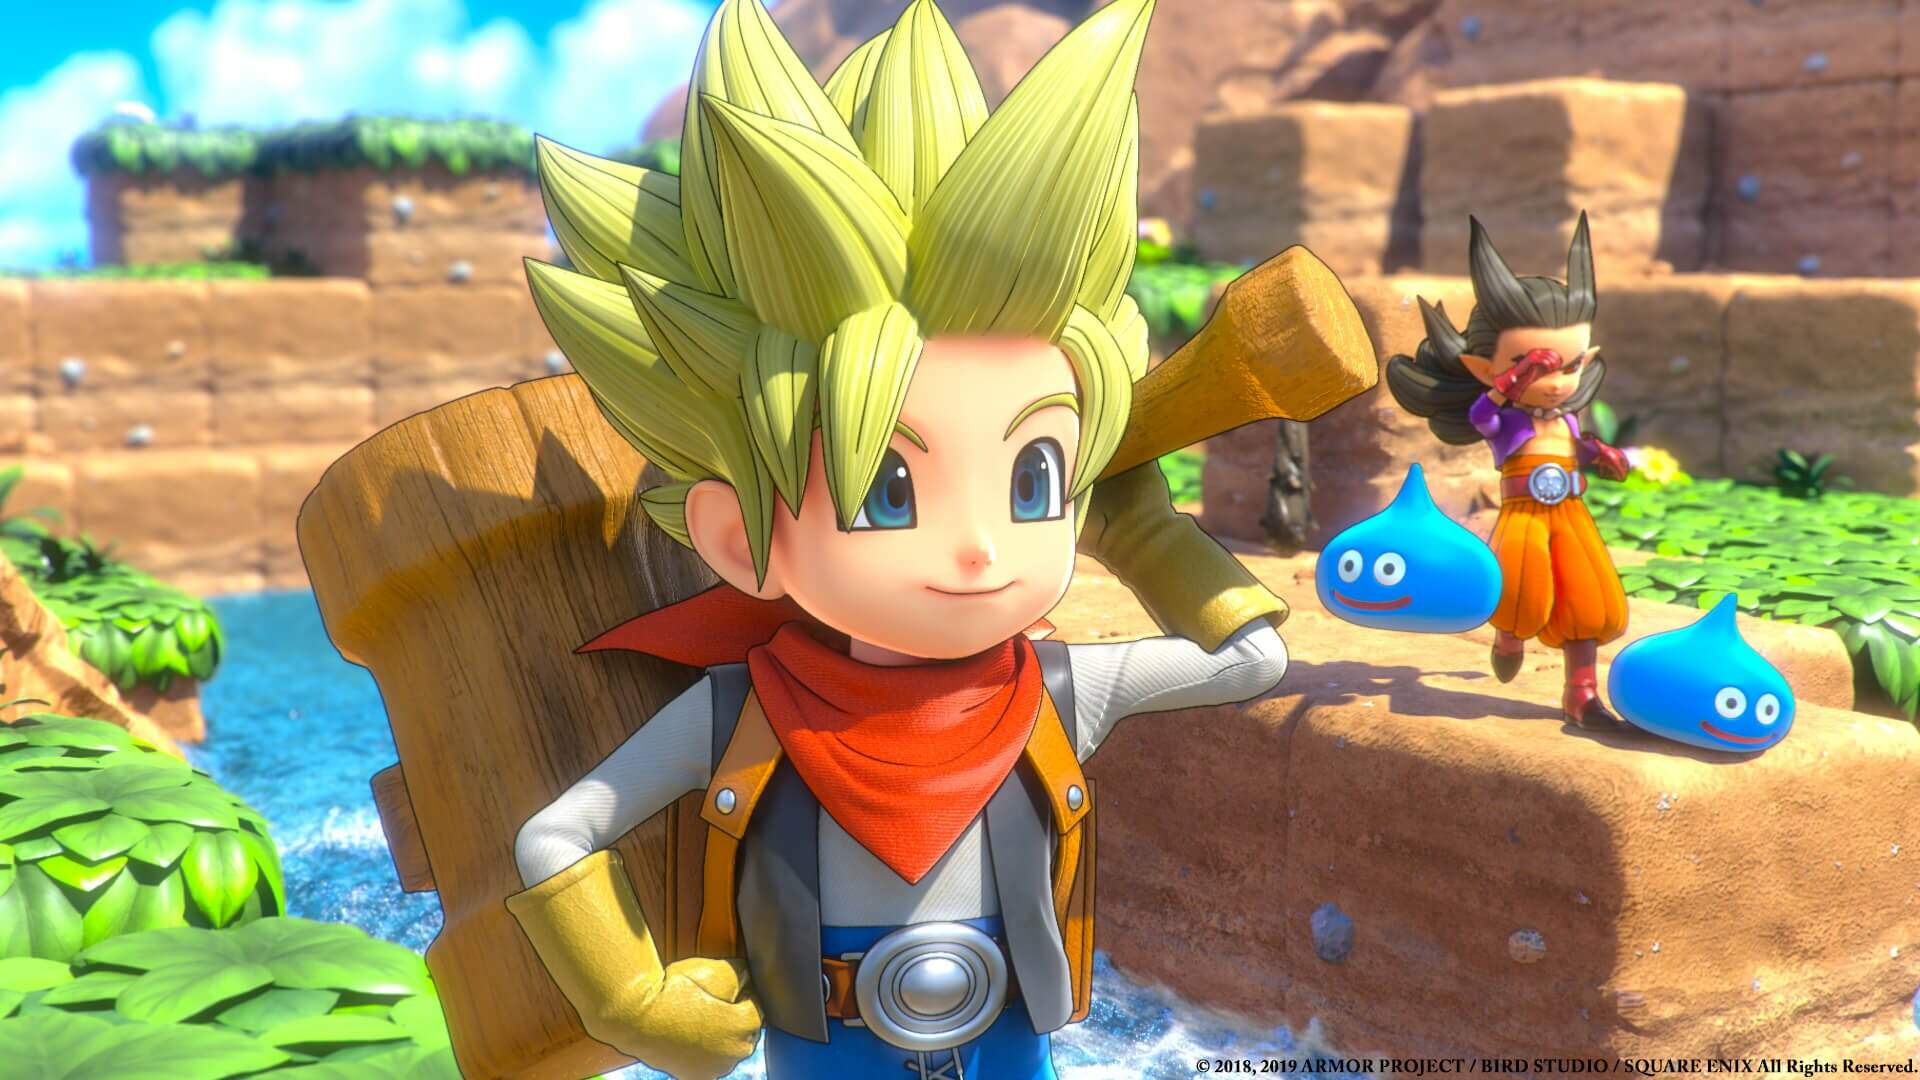 Dragon Quest Builders Director Departs Square Enix Citing Burnout and Desire for Different Development Cycle